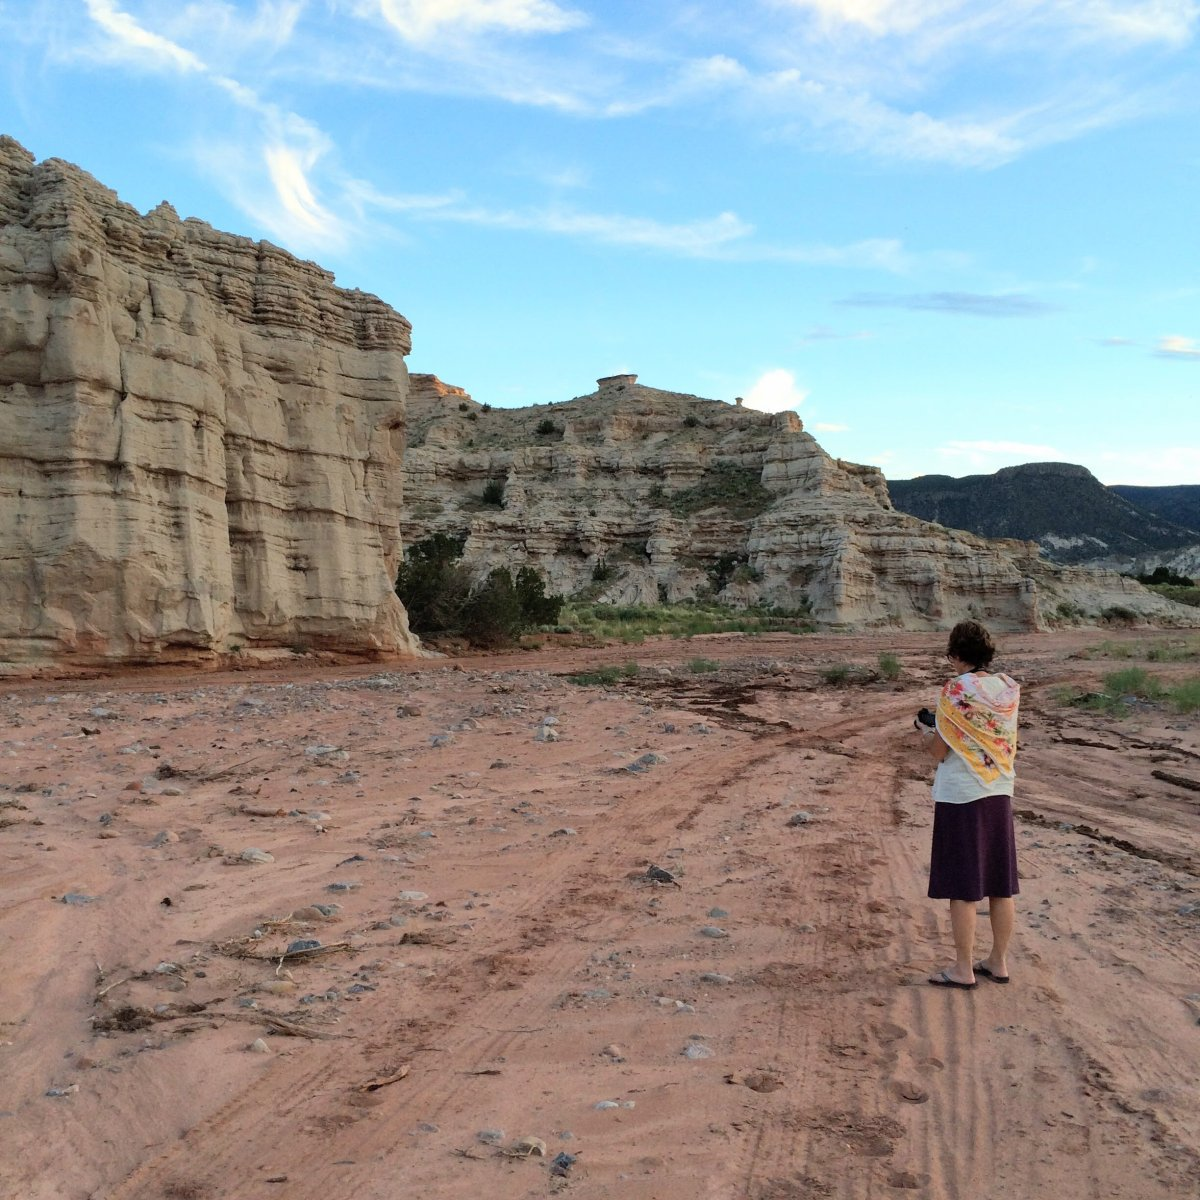 Cheryl takes a photo of an incredible rock formation near Abiquiu.